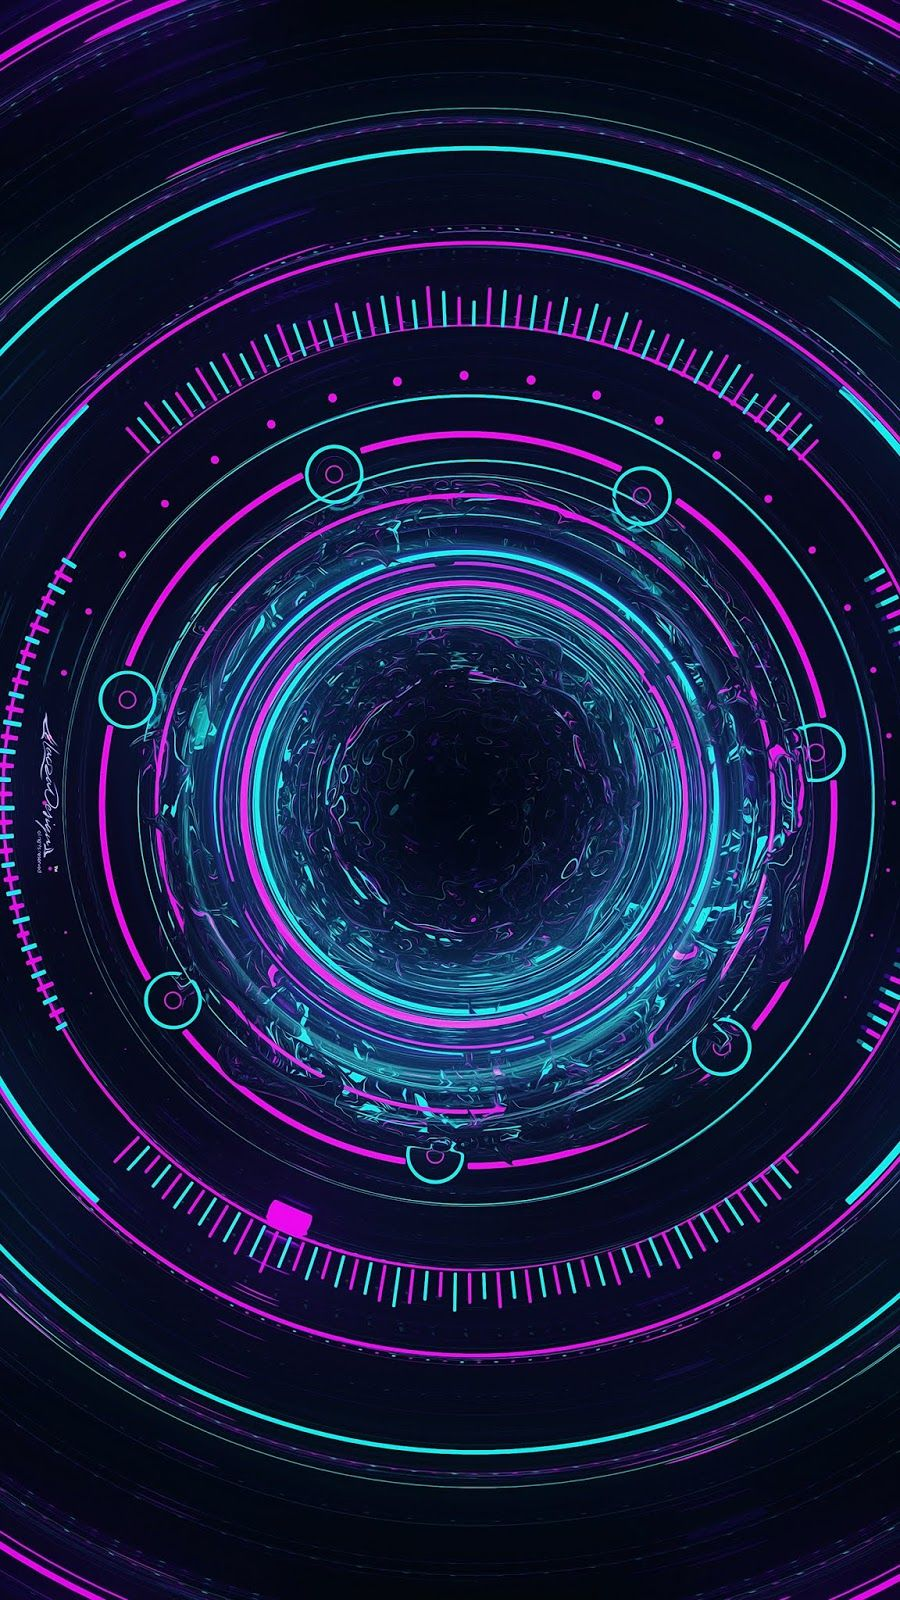 Abstract Circle Wallpaper Iphone Android Background Followme Technology Wallpaper Android Wallpaper Beautiful Wallpapers